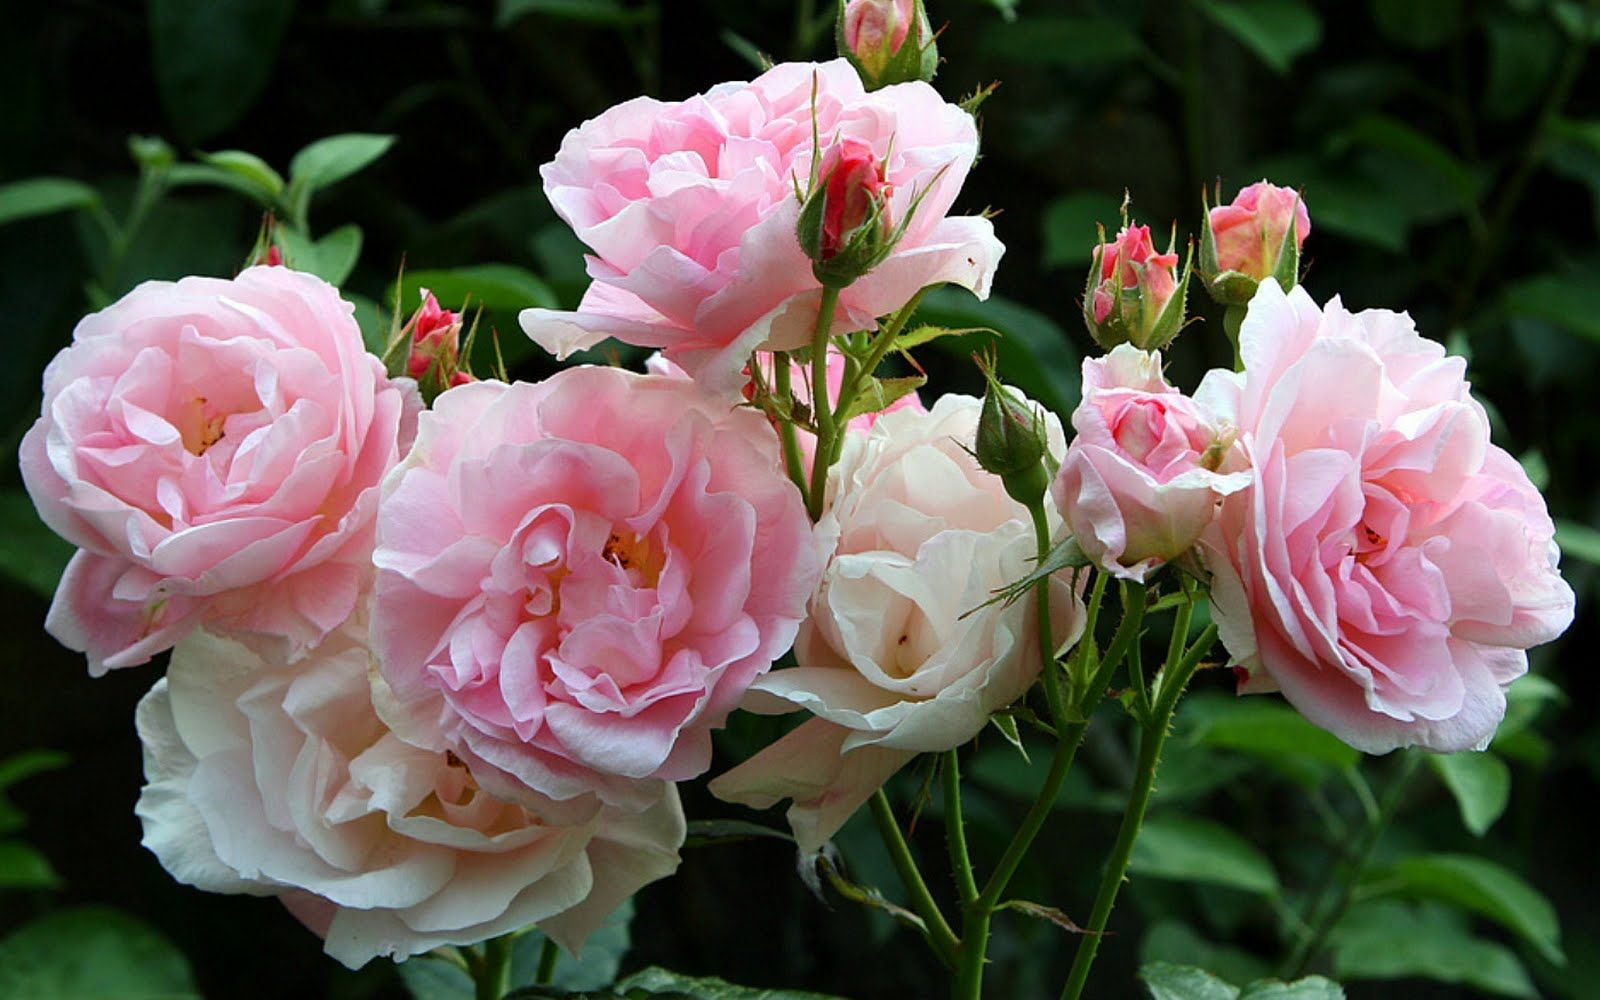 Pink summer flowers pink summer roses flowers nature pink free file sharing and storage pink summer flowers pink summer roses flowers nature pink roses summer izmirmasajfo